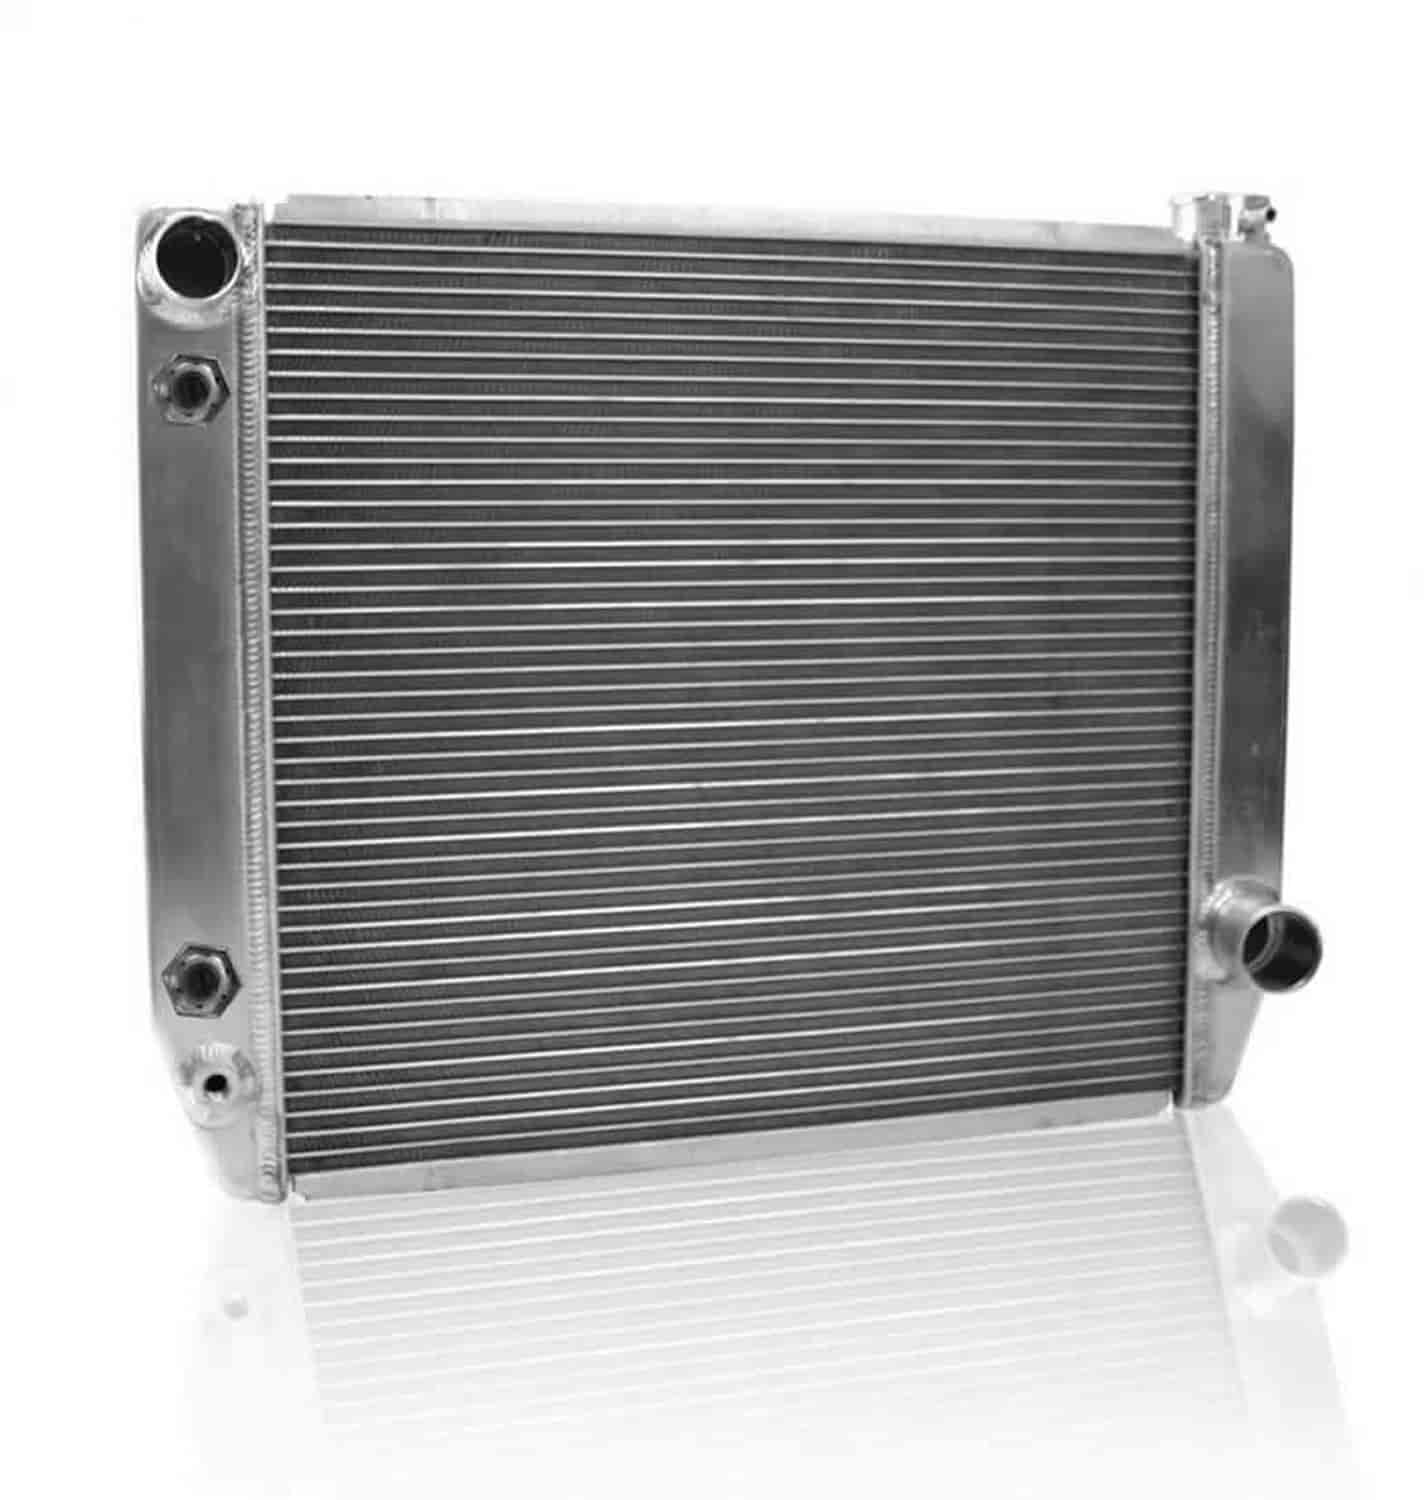 Griffin Radiators 1-25222-T